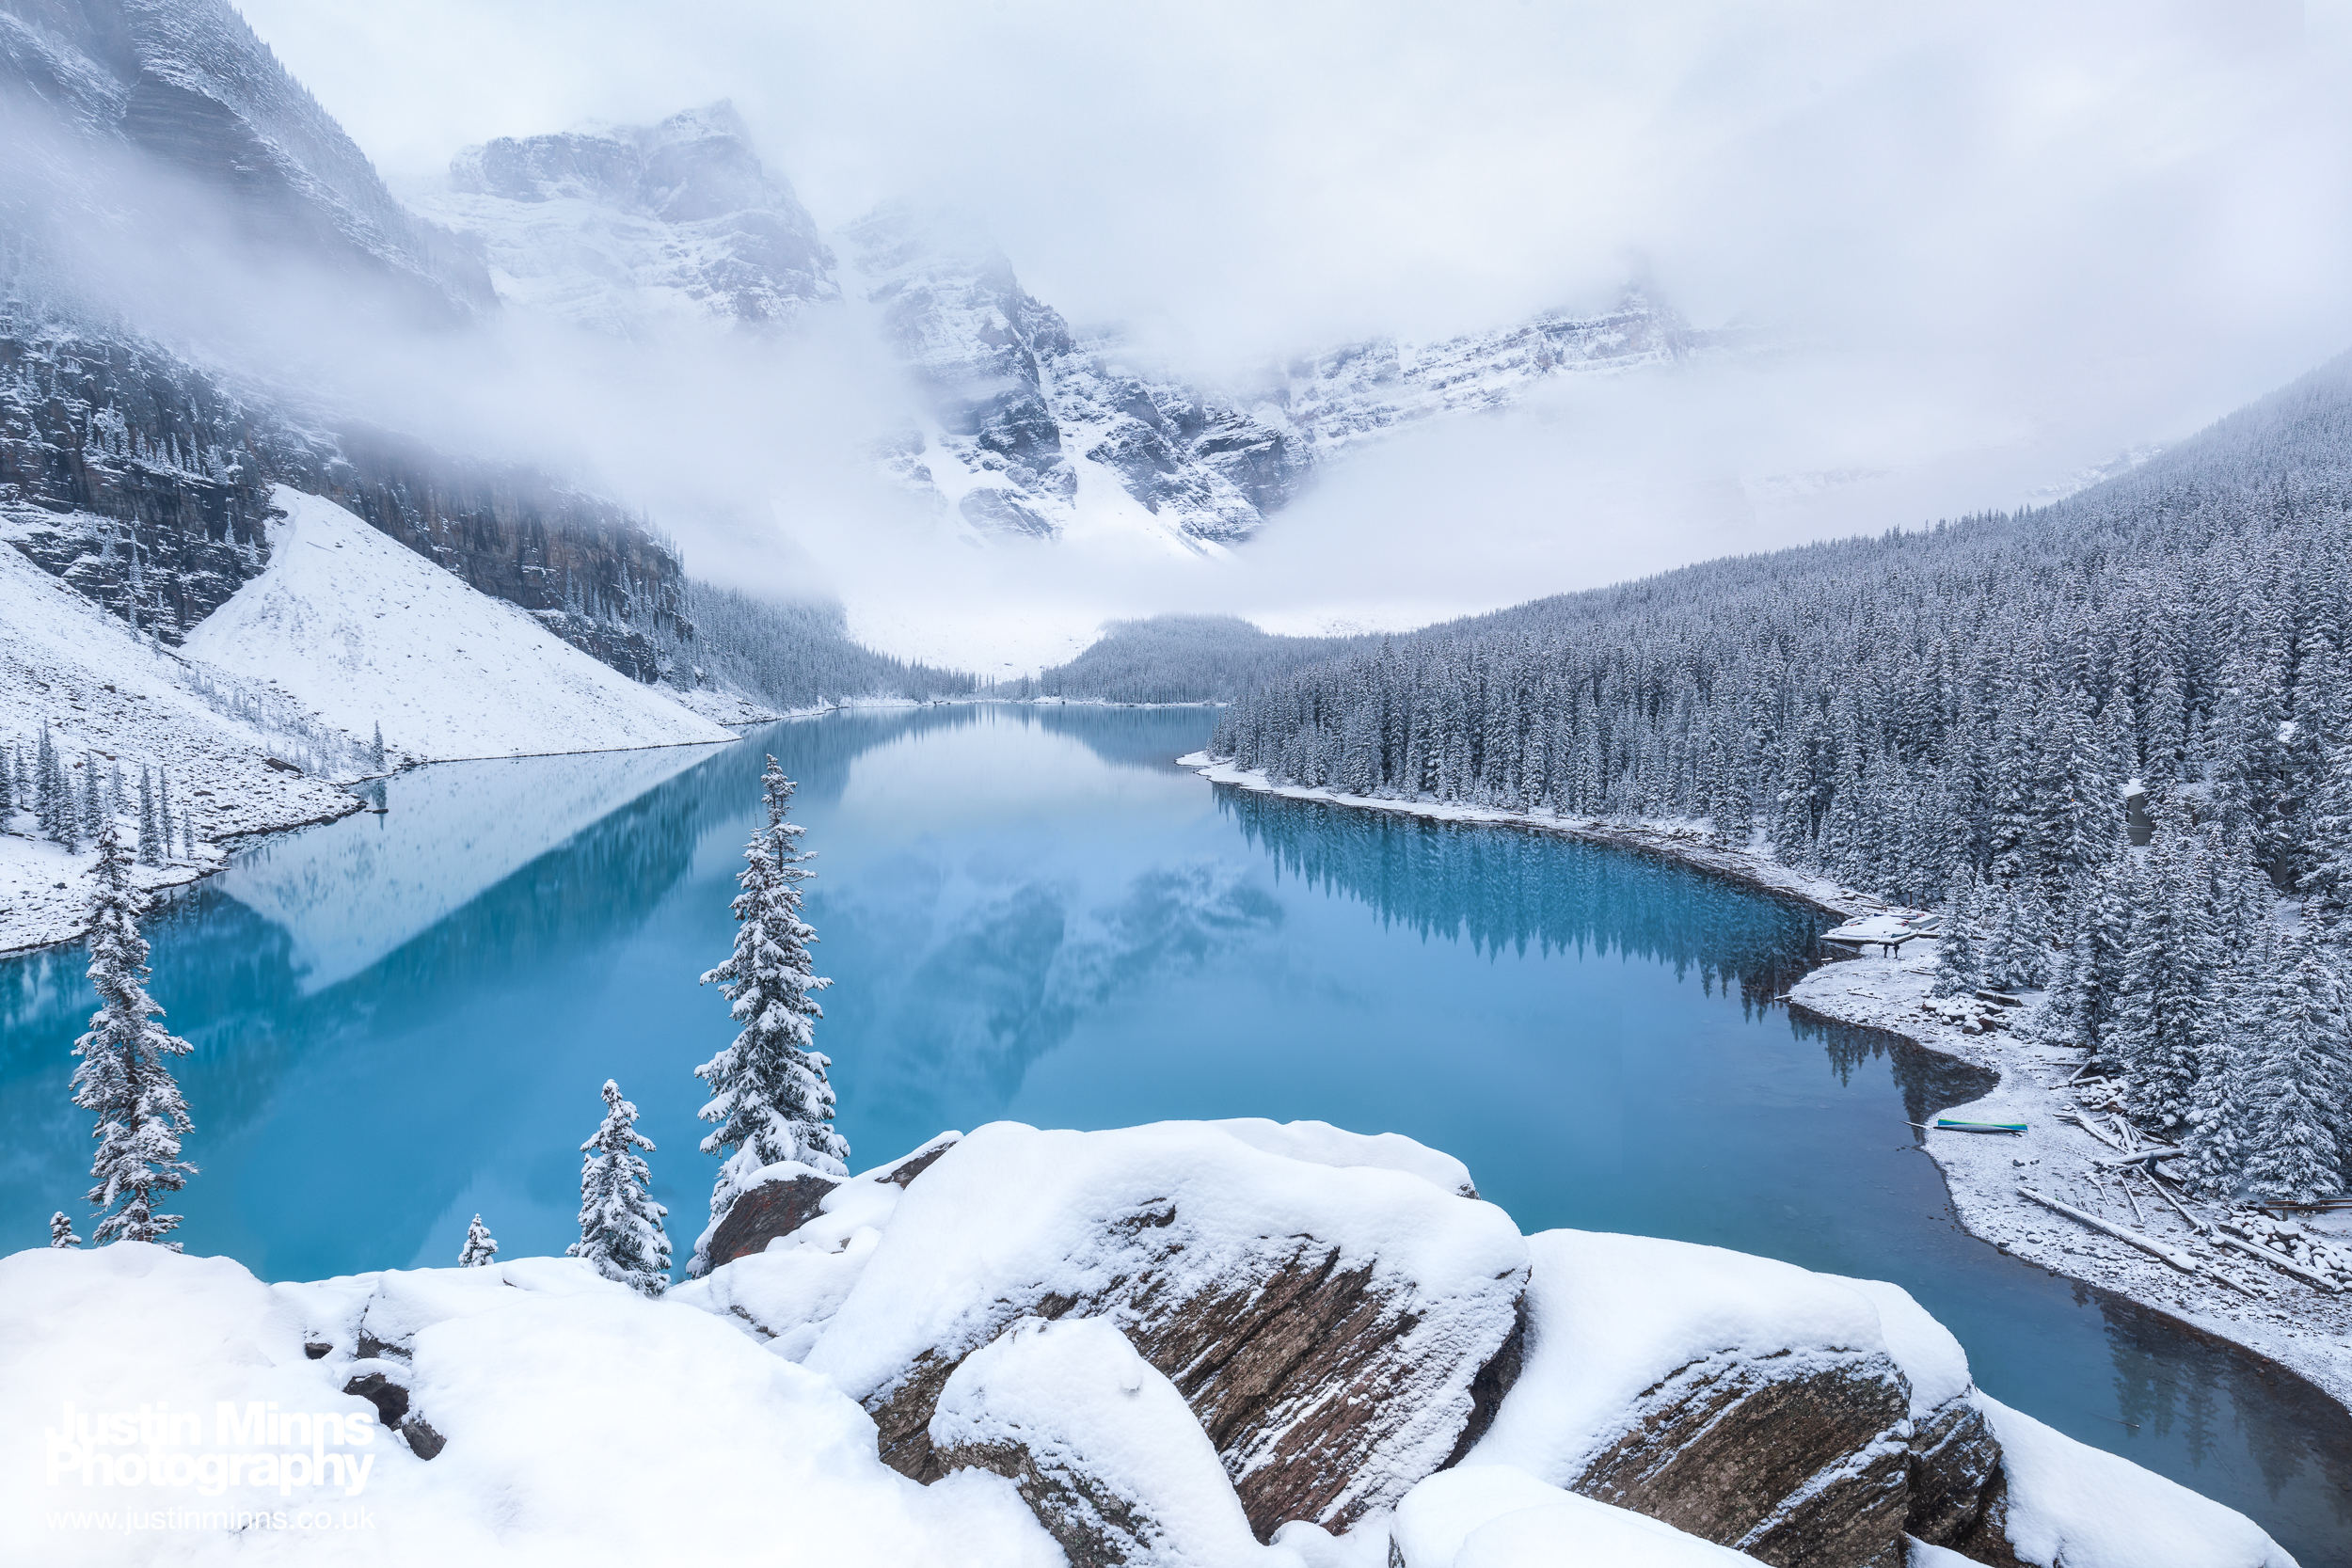 Moraine Lake early on a cold morning